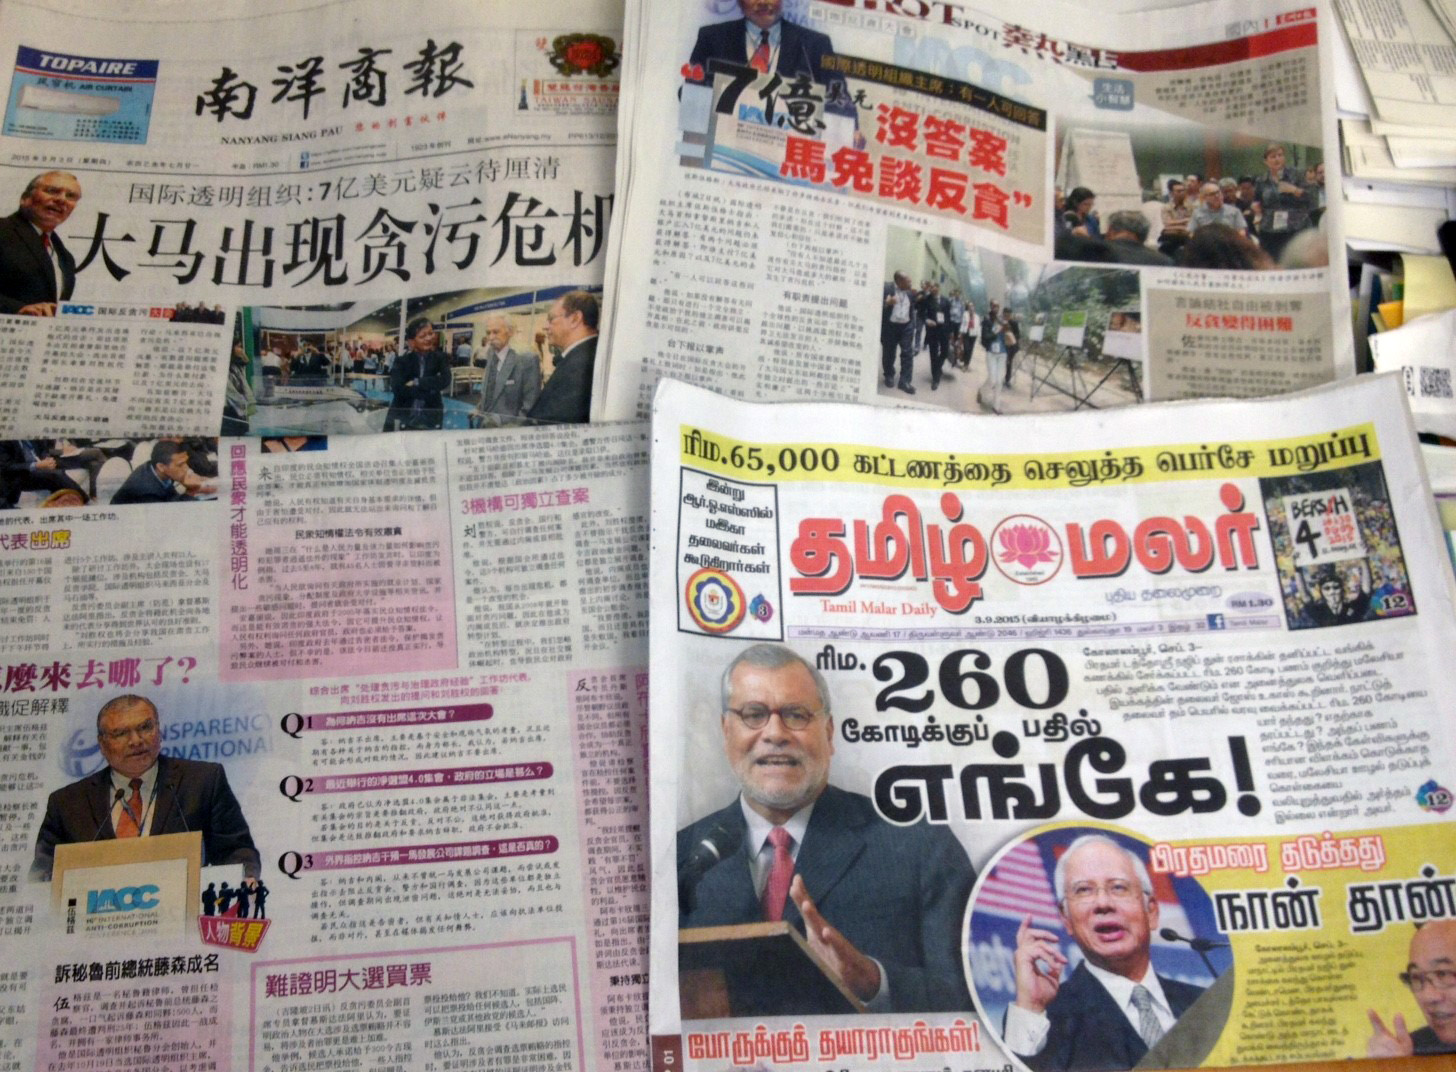 Transparency International chair José Ugaz made the front page of many papers in Malaysia after he spoke critically of a scandal surrounding the prime minister in his speech at the 16th IACC meeting in Kuala Lumpur.